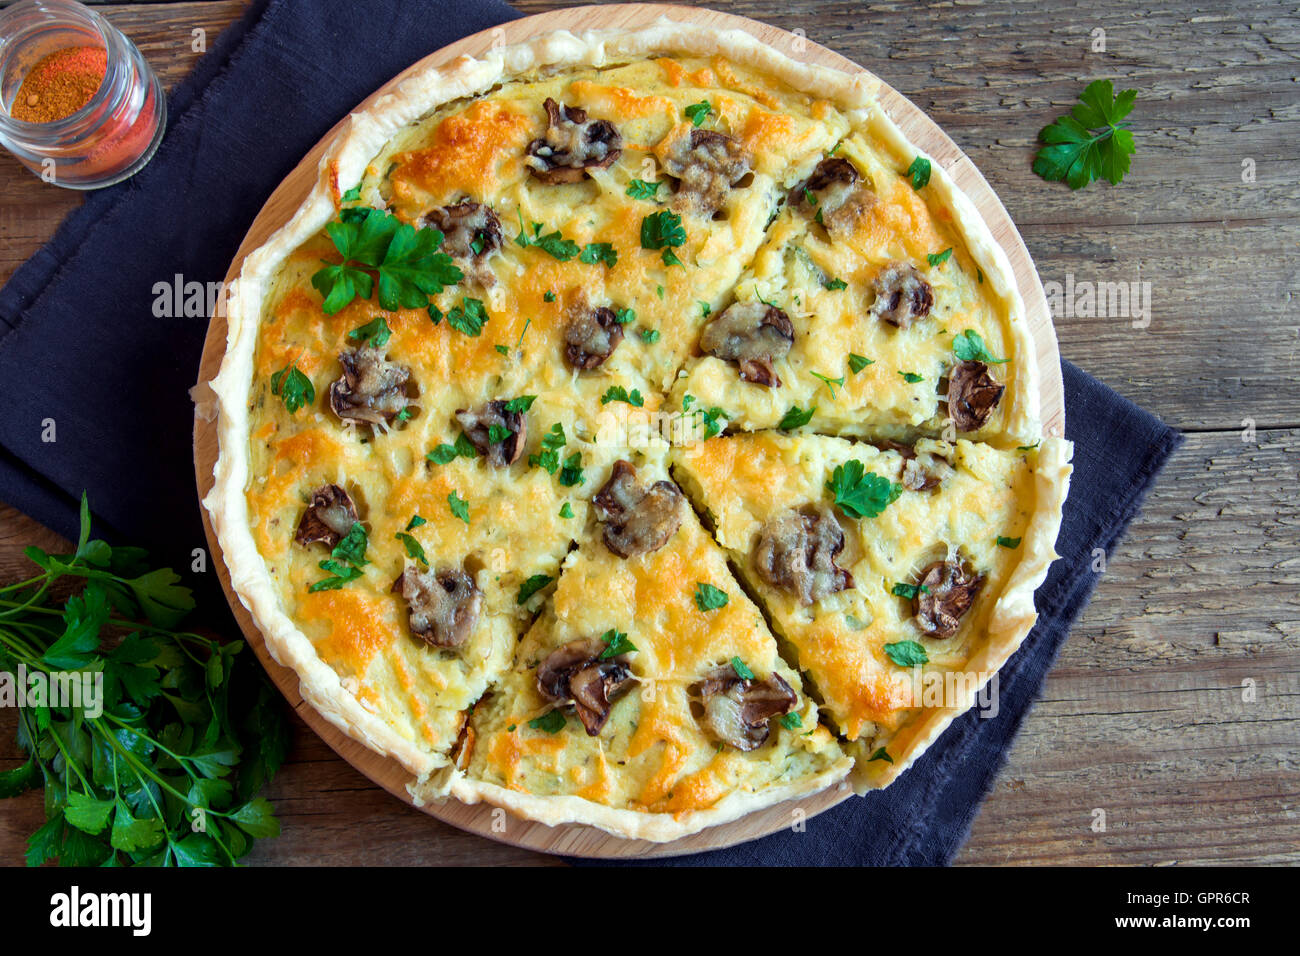 Homemade french quiche pie with mushrooms (champignons) and cheese over rustic wooden background - Stock Image